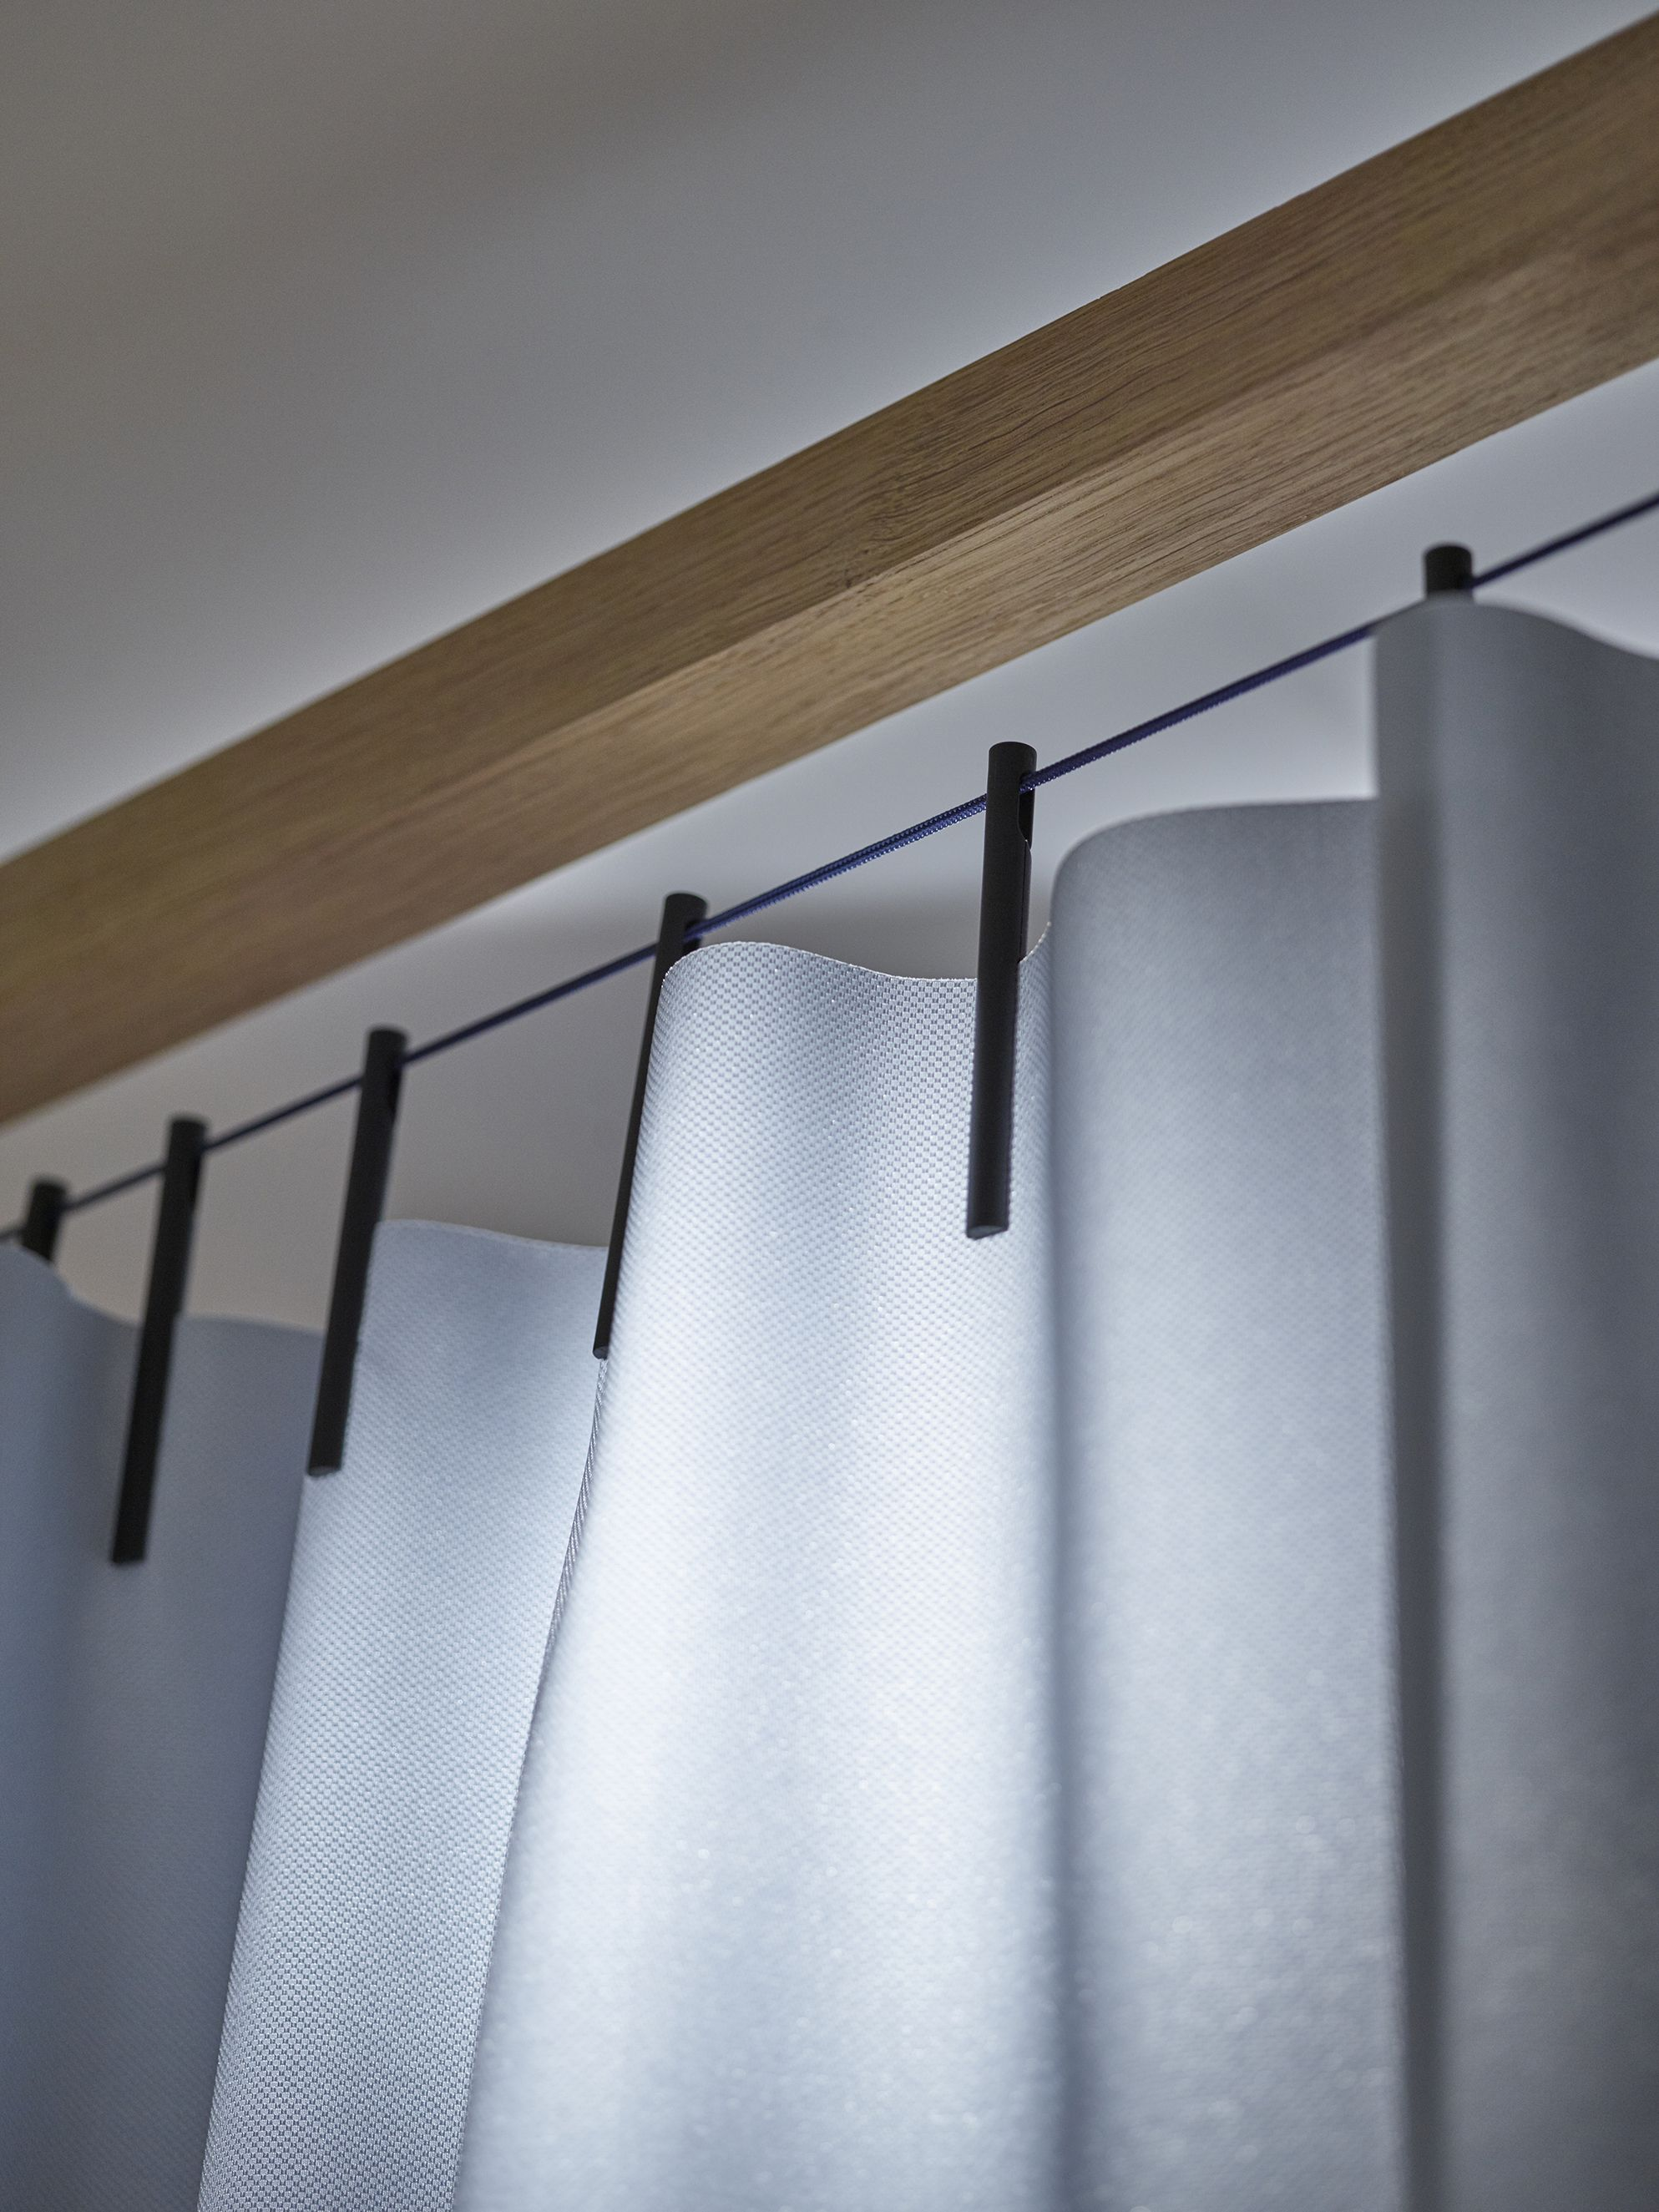 The Ready Made Curtain By Ronan Erwan Bouroullec Lighting Design Interior Curtain Decor Industrial Window Treatments